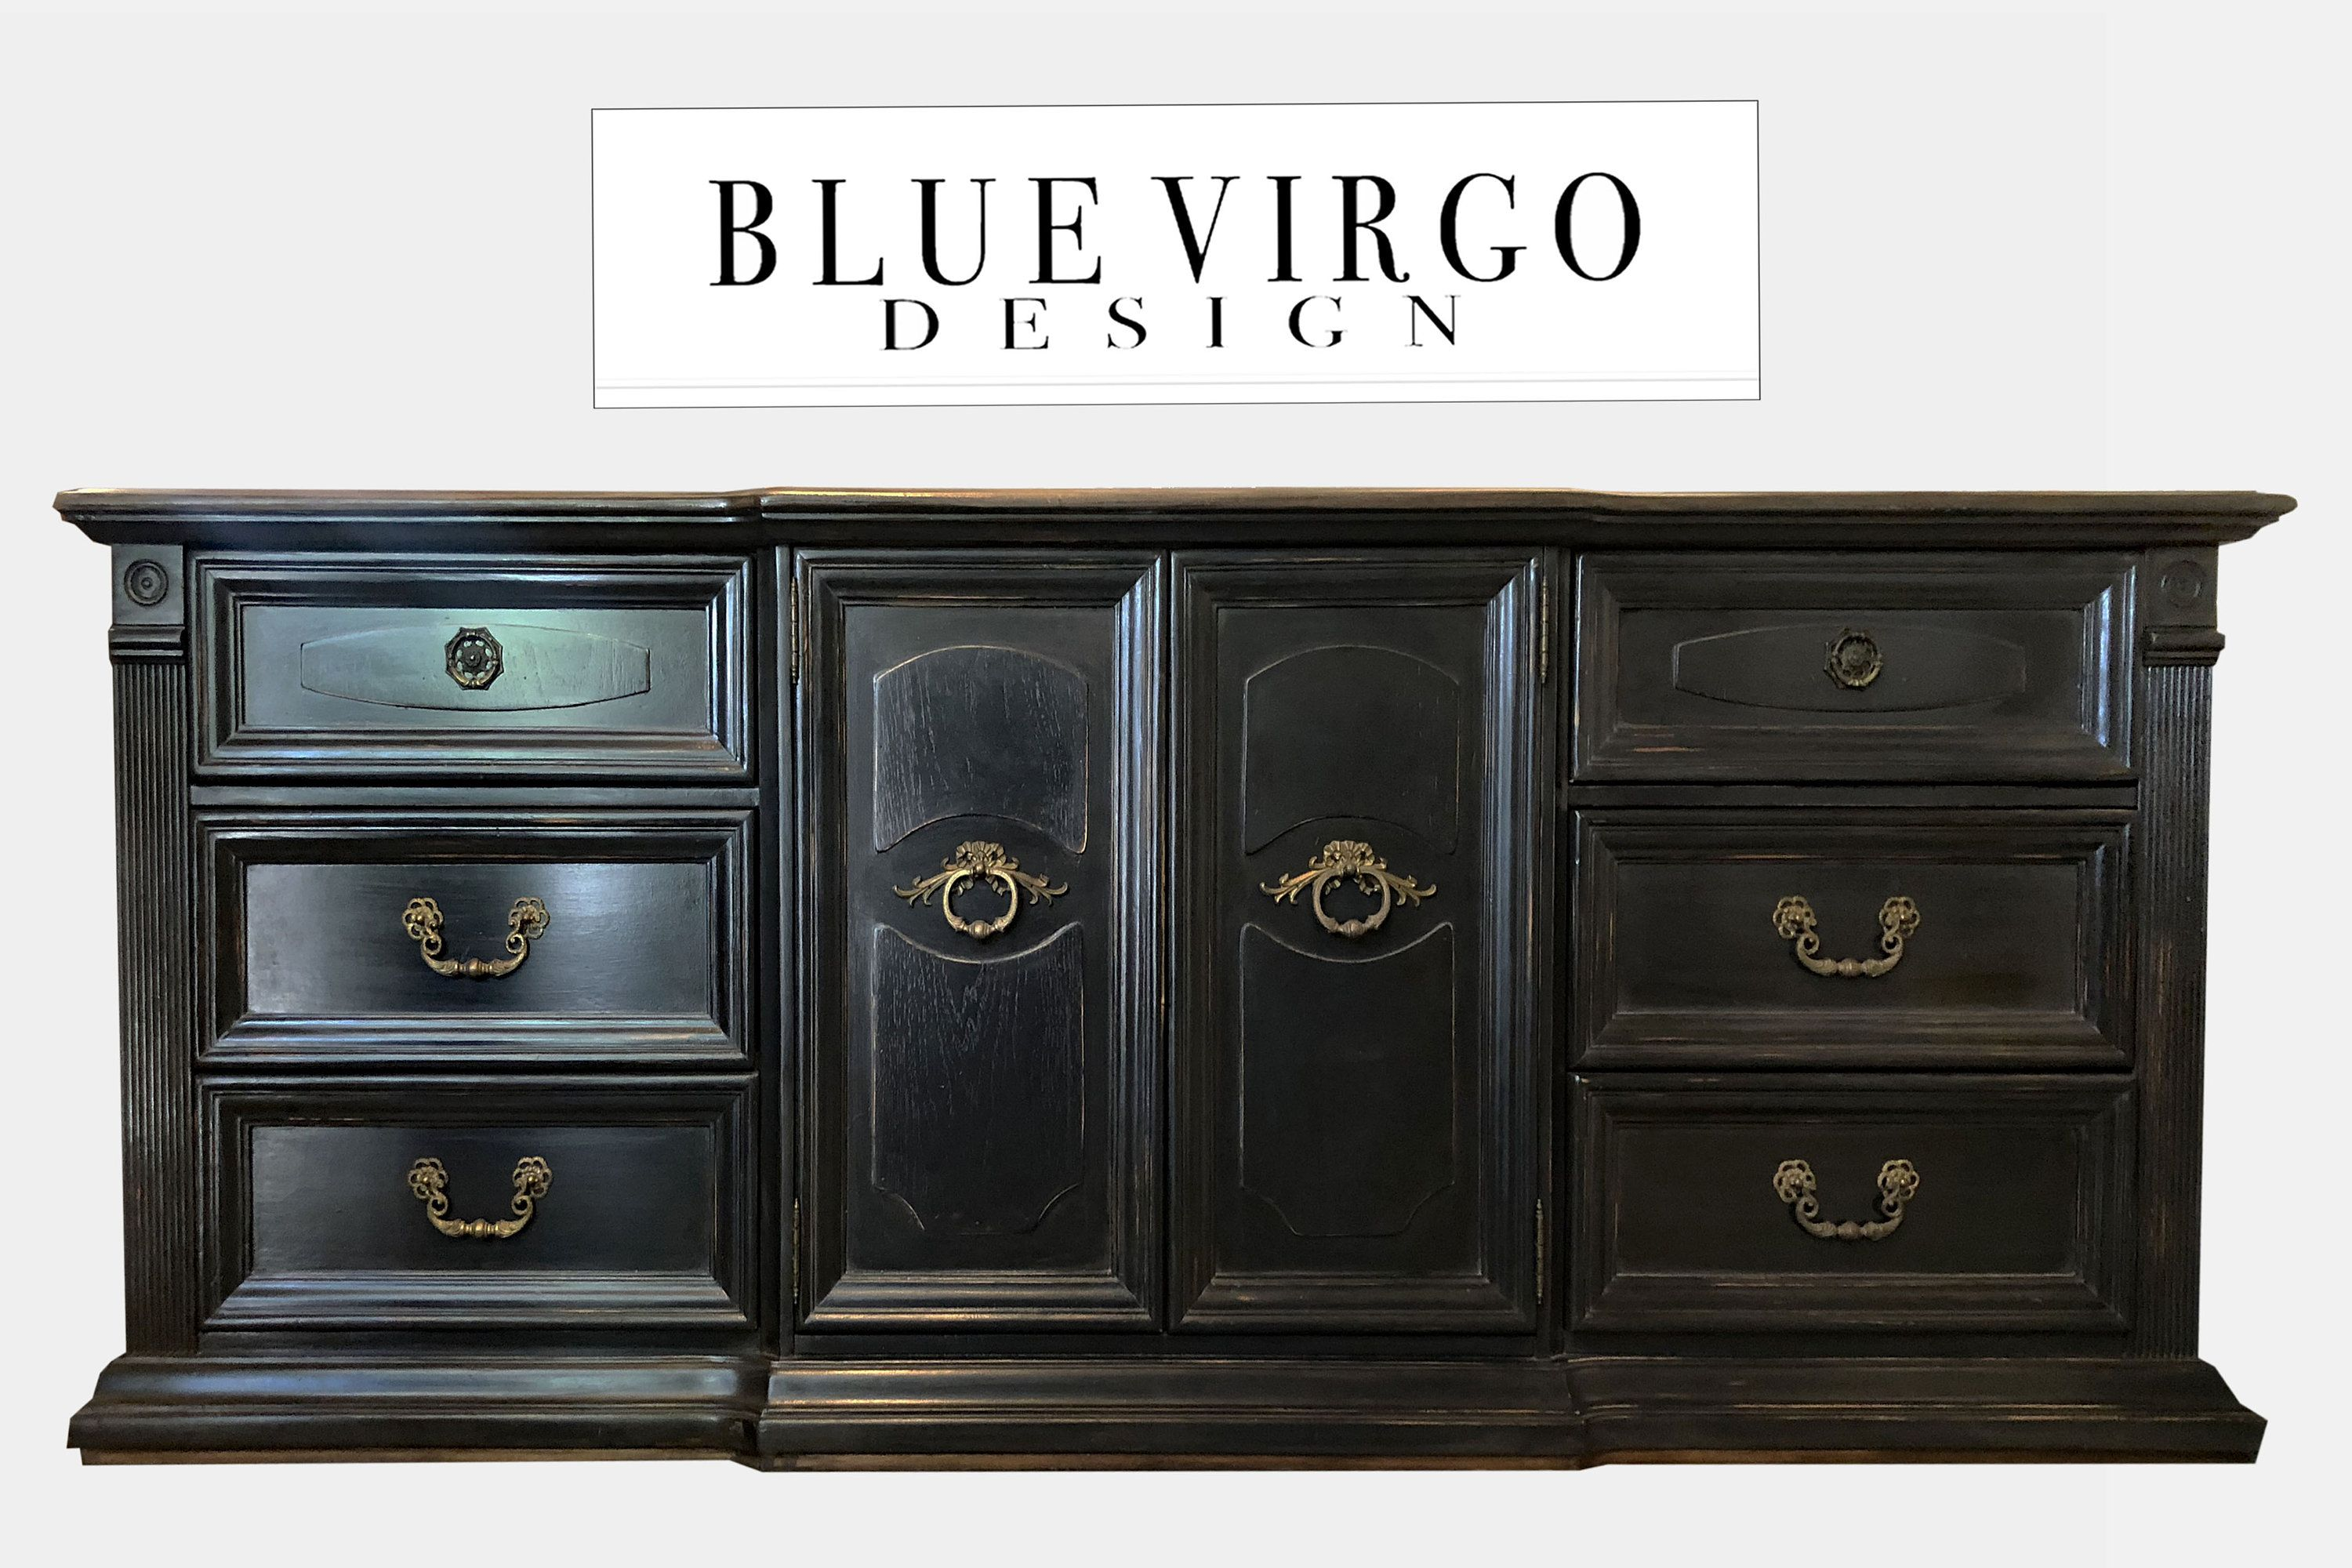 French Country 9 Drawer Black Distressed Dresser Buffet Etsy Black Distressed Dresser Distressed Dresser Buffet Cabinet [ 2000 x 3000 Pixel ]